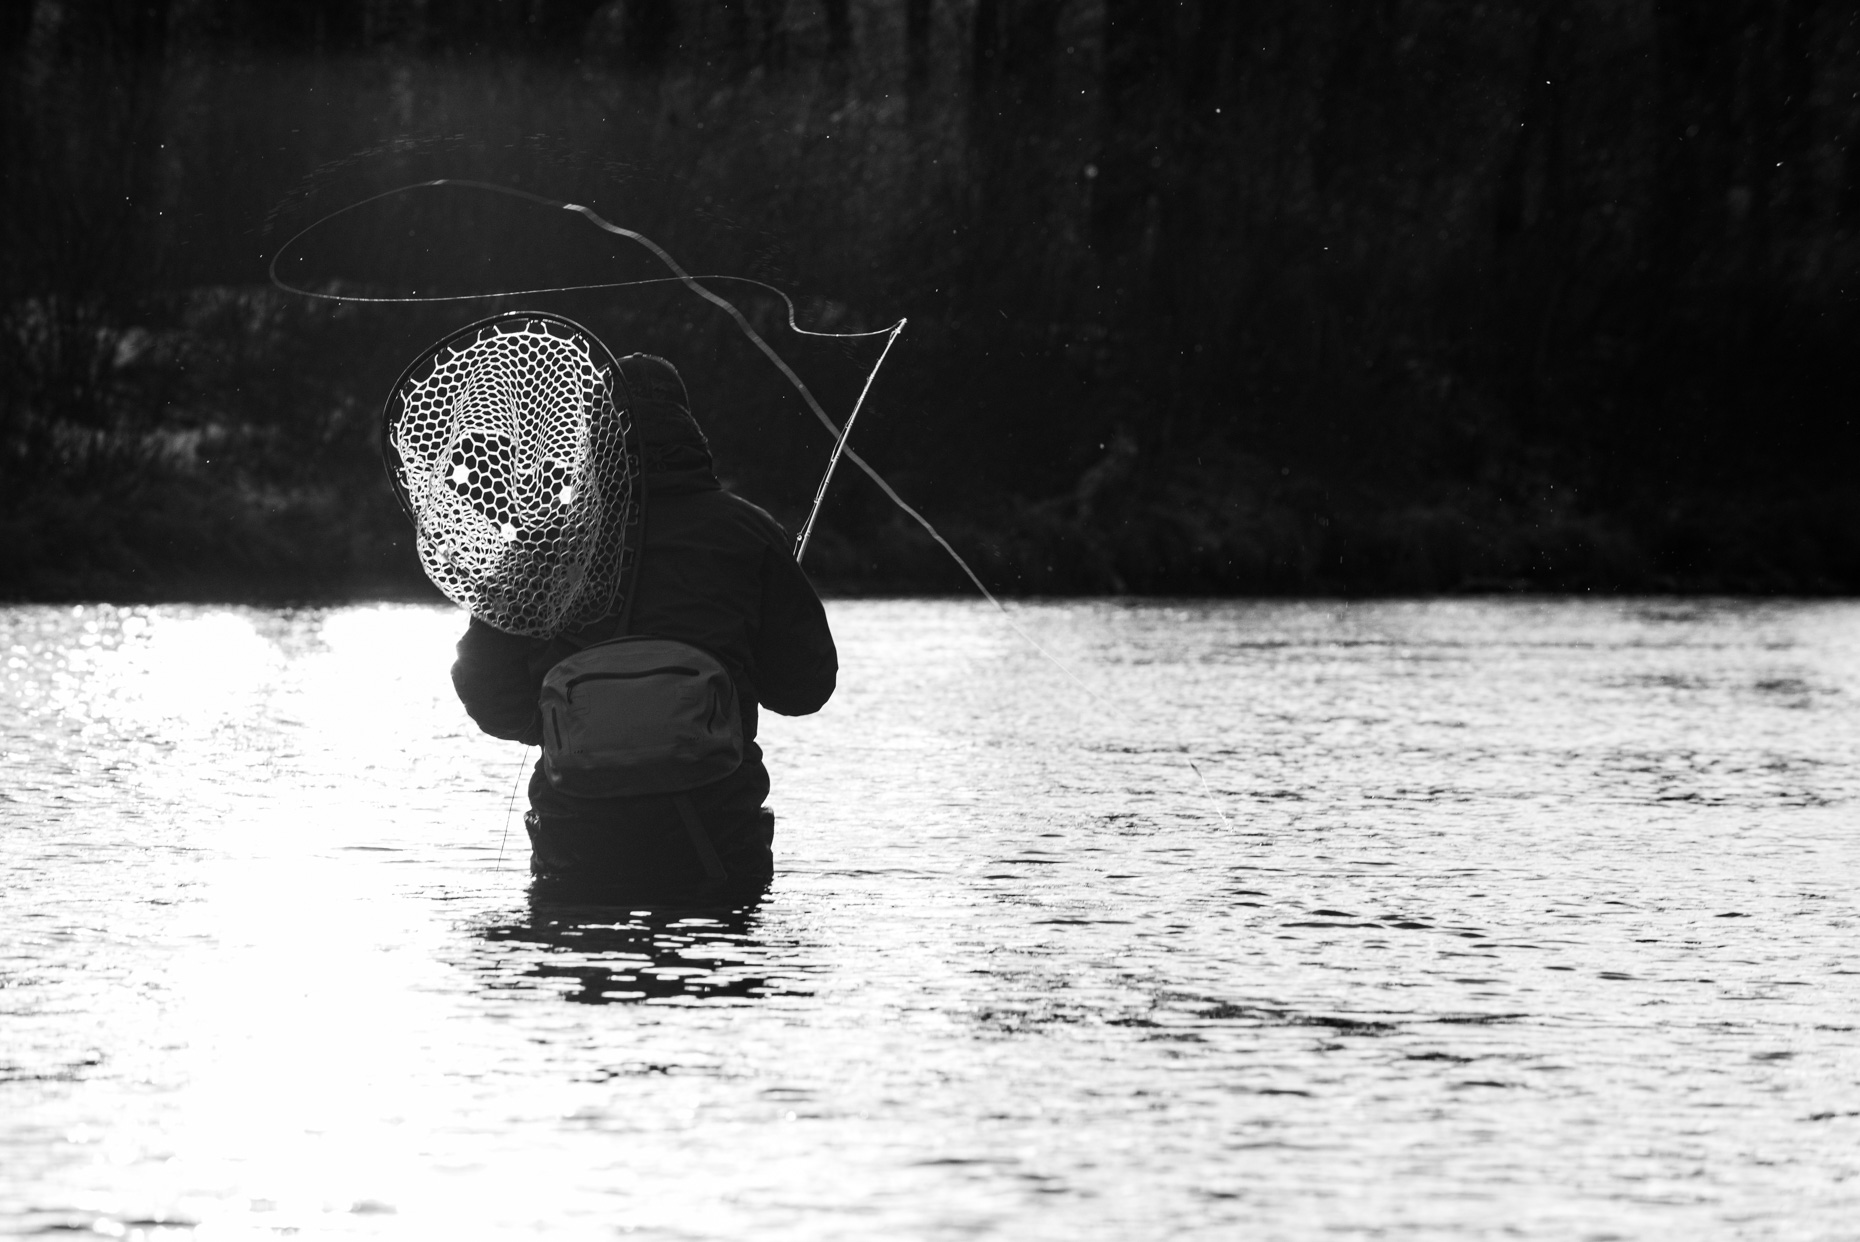 a fly fisherman casting on a cloudy day in New Hampshire